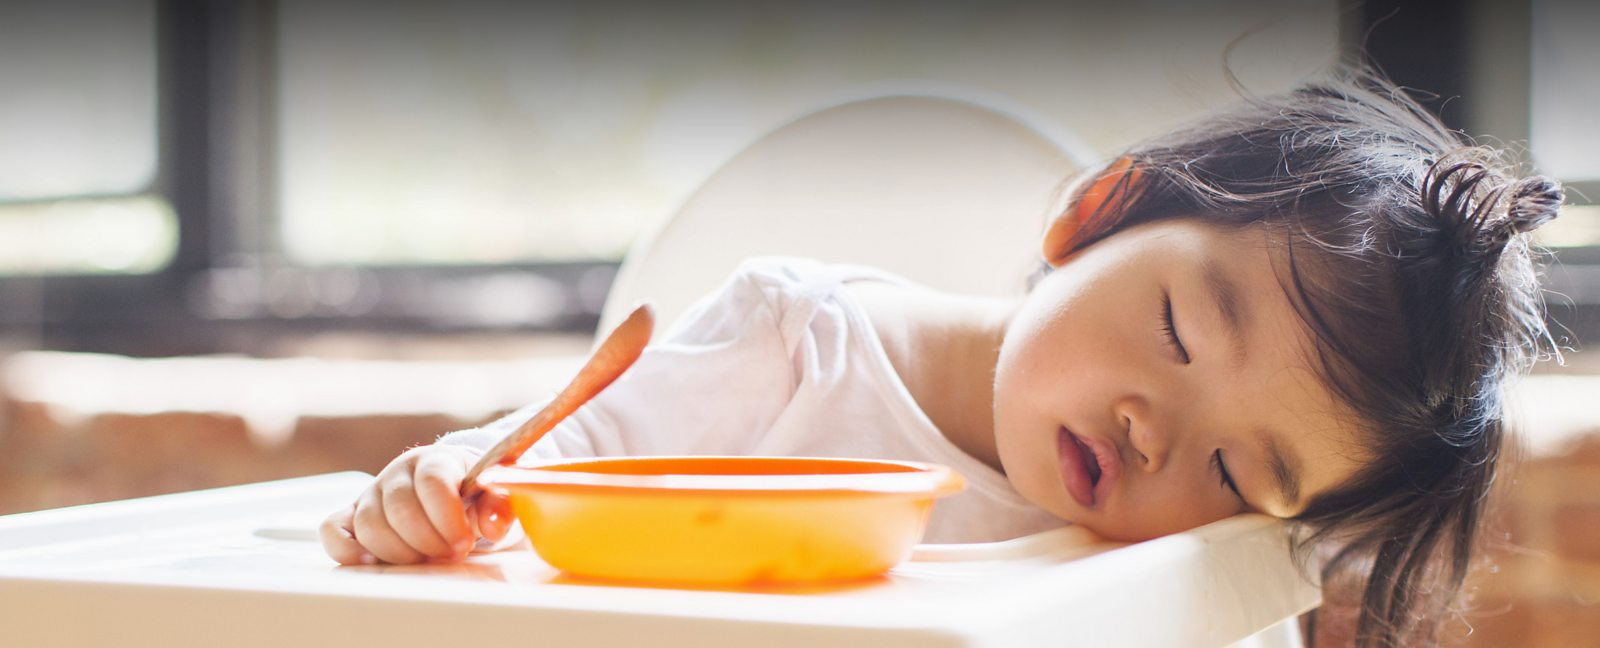 What to eat for dinner to ensure a good sleep